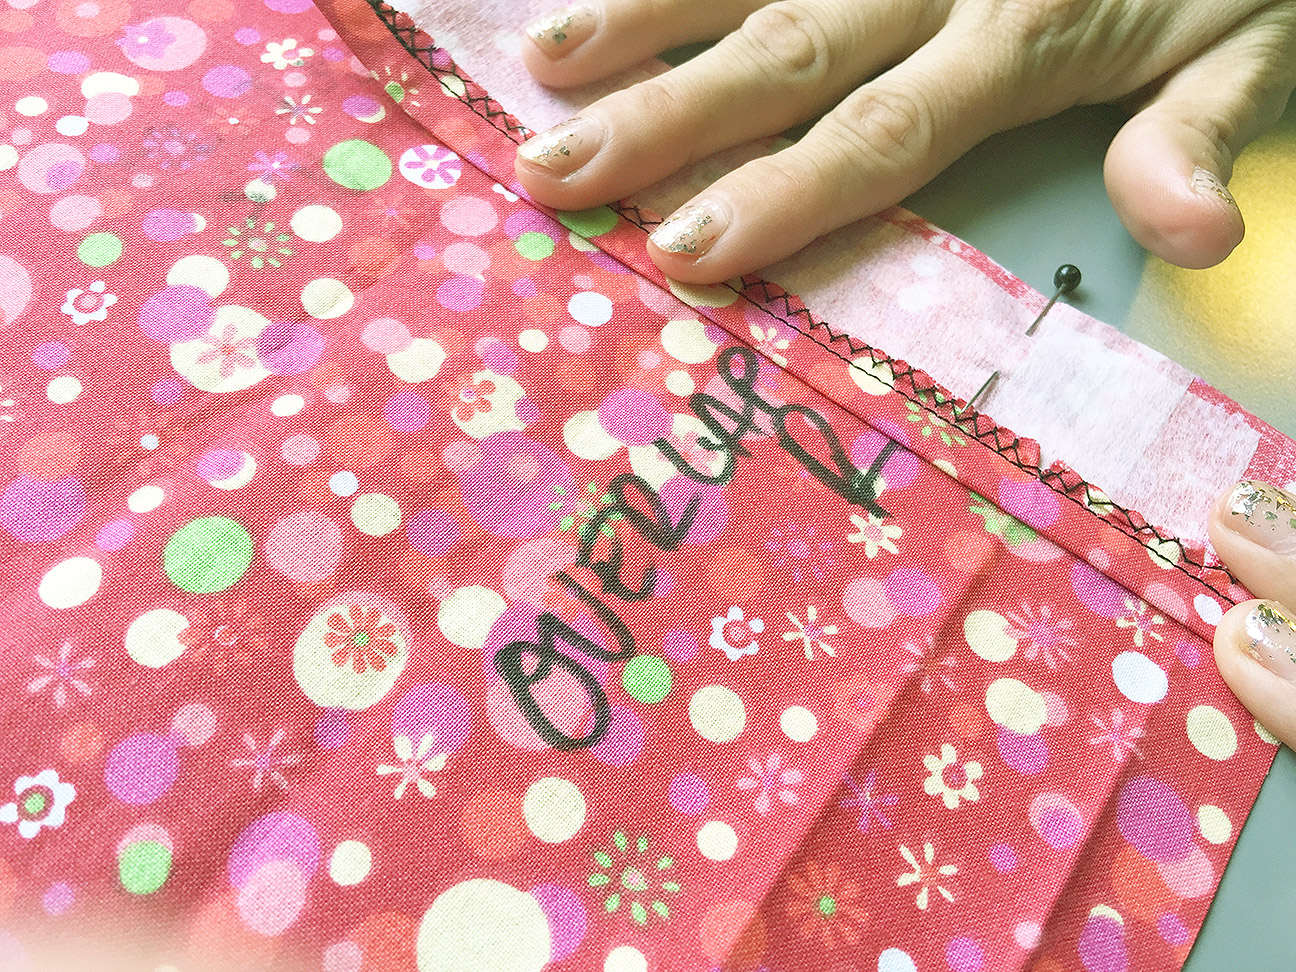 How to Sew a Kickpleat, Pinning Overlap Seam Allowance| @vintageontap